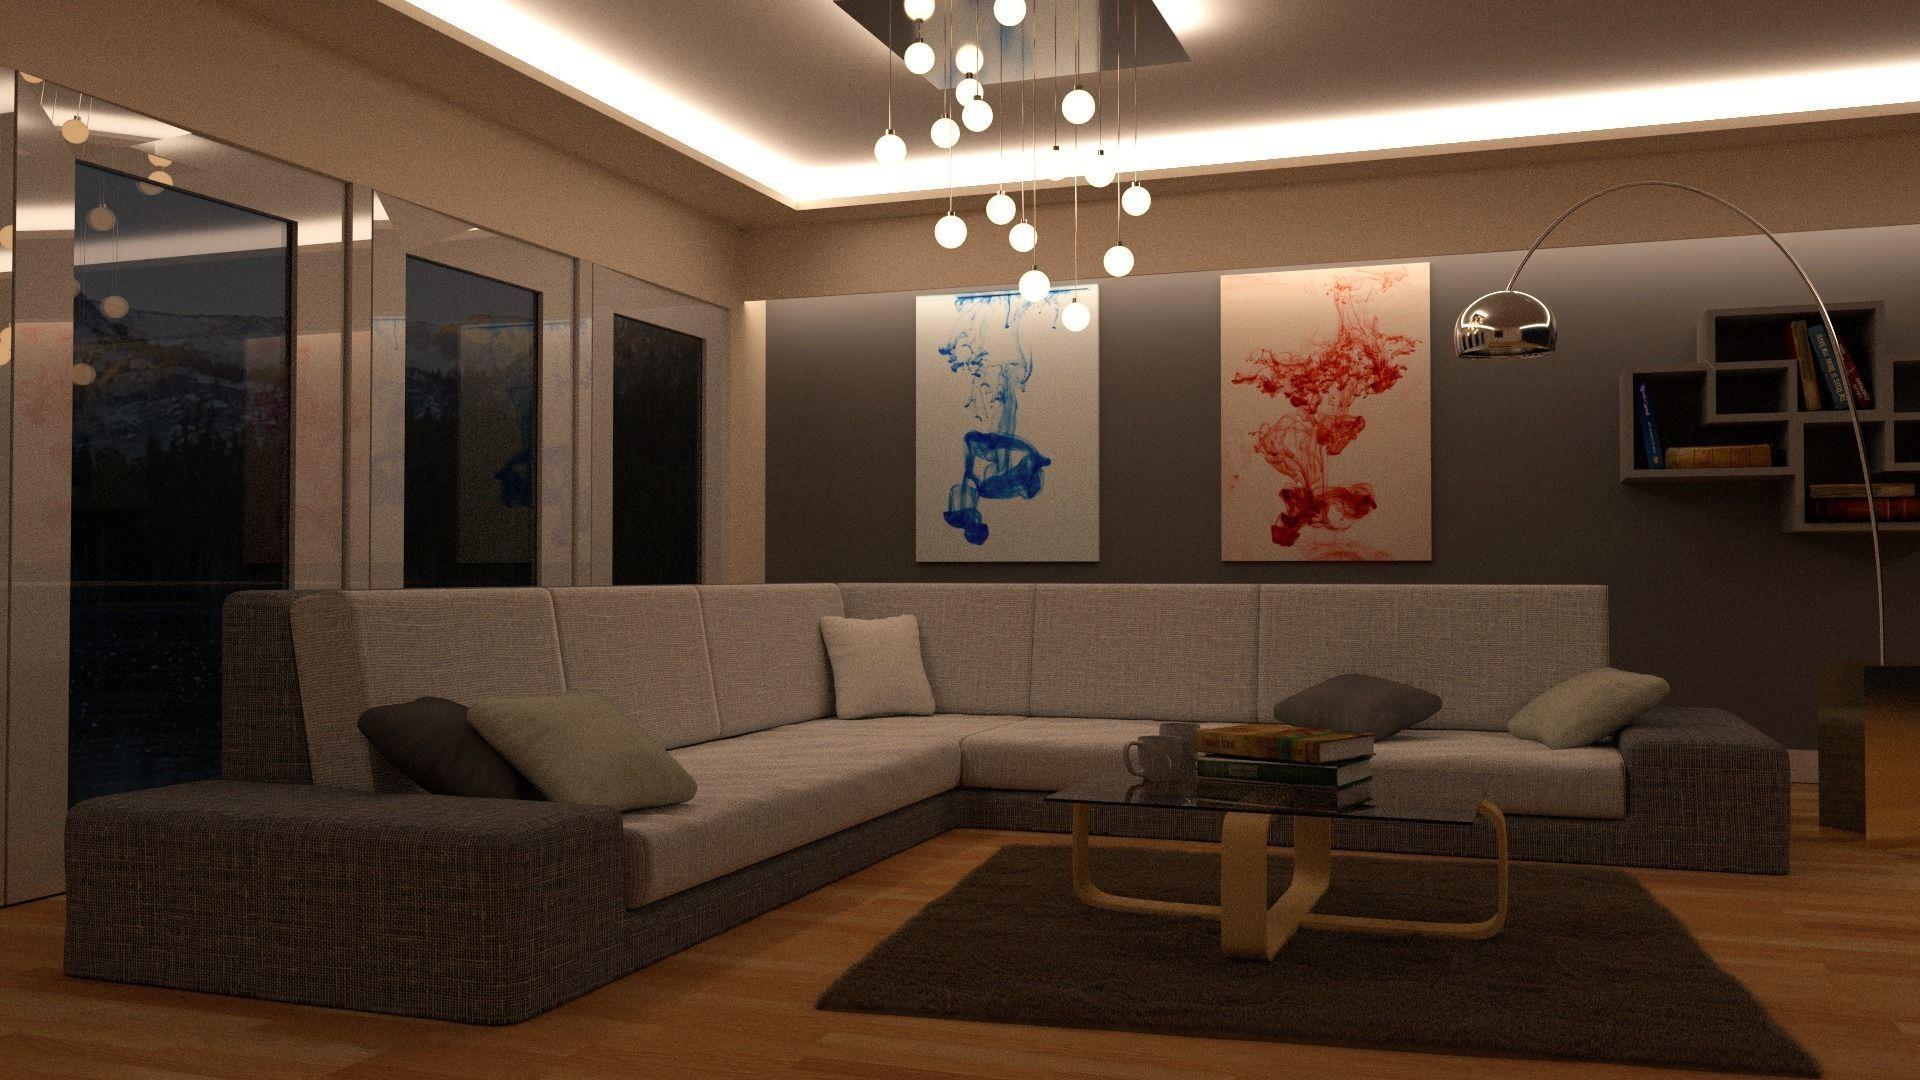 Lounge room day and night scene blender models 3d model blend 2 living room lounge room - Living room lounge ...